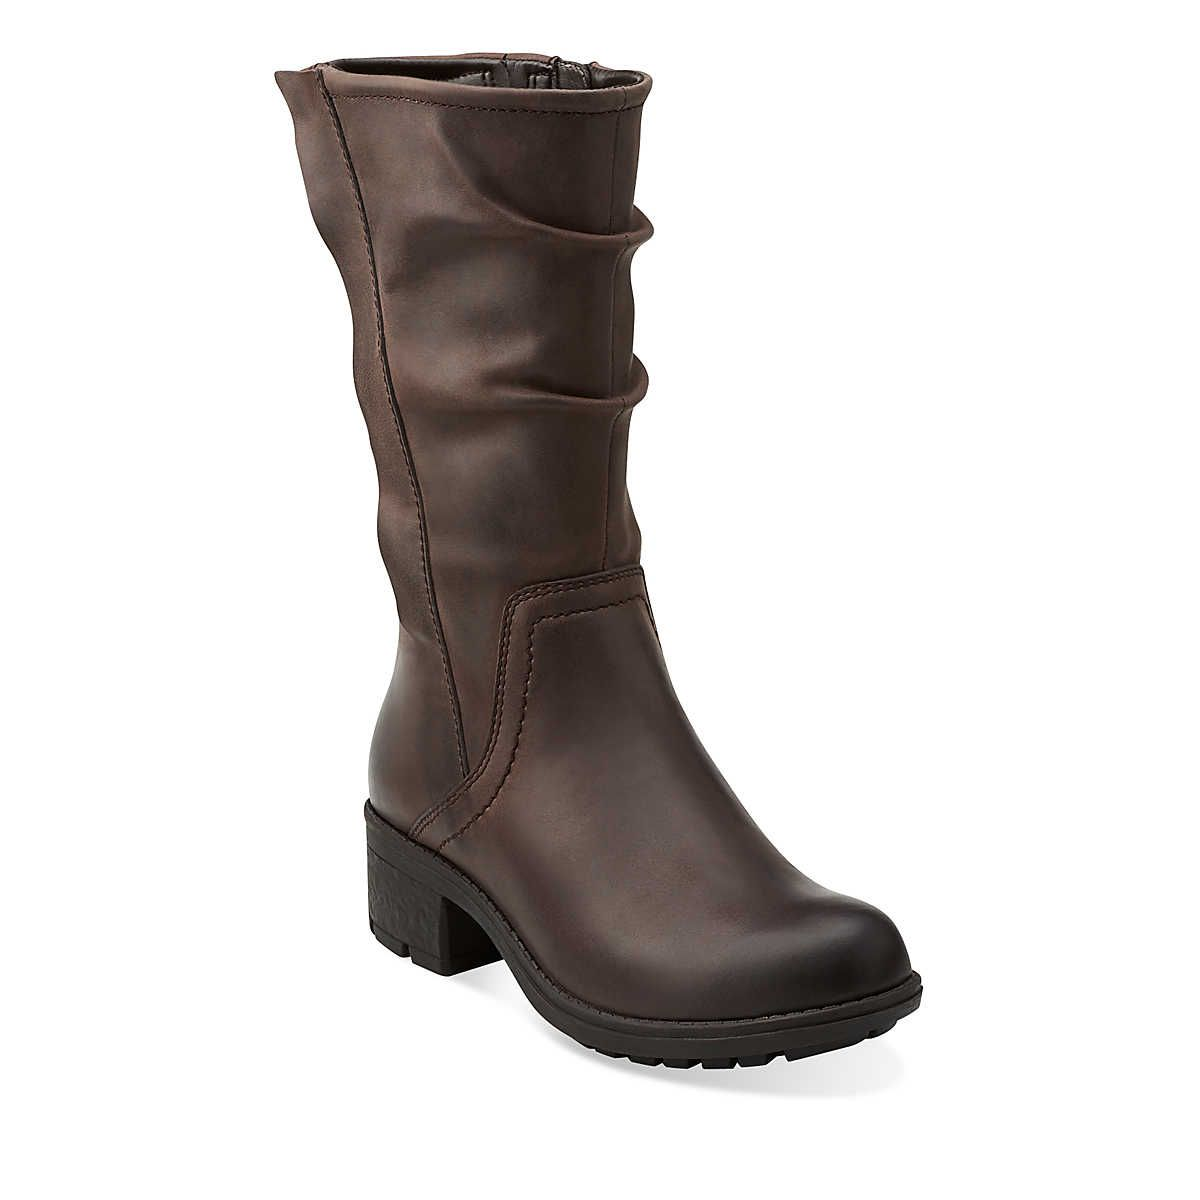 Women's Mid Calf Boots/Clarks Mansi Juniper Dark Brown Leather